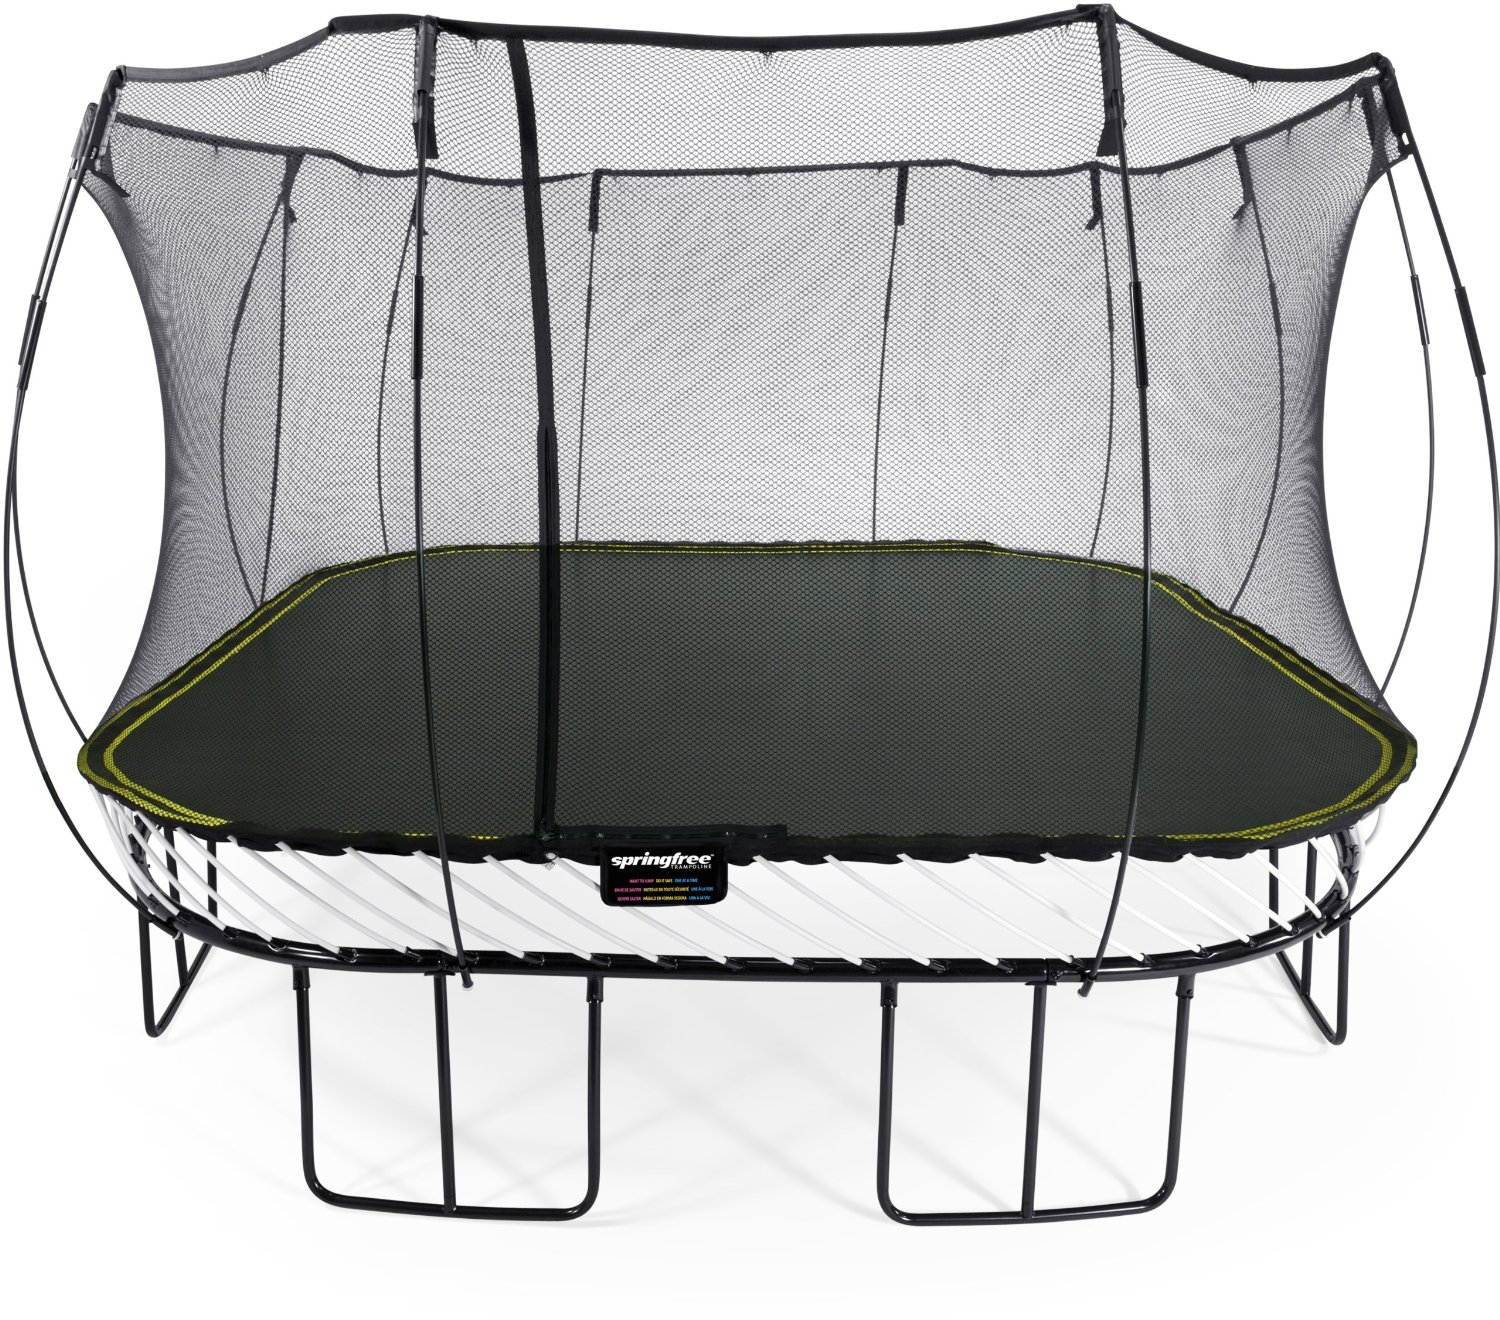 safest trampoline - Best Trampolines Reviews Of Safest Backyard Models